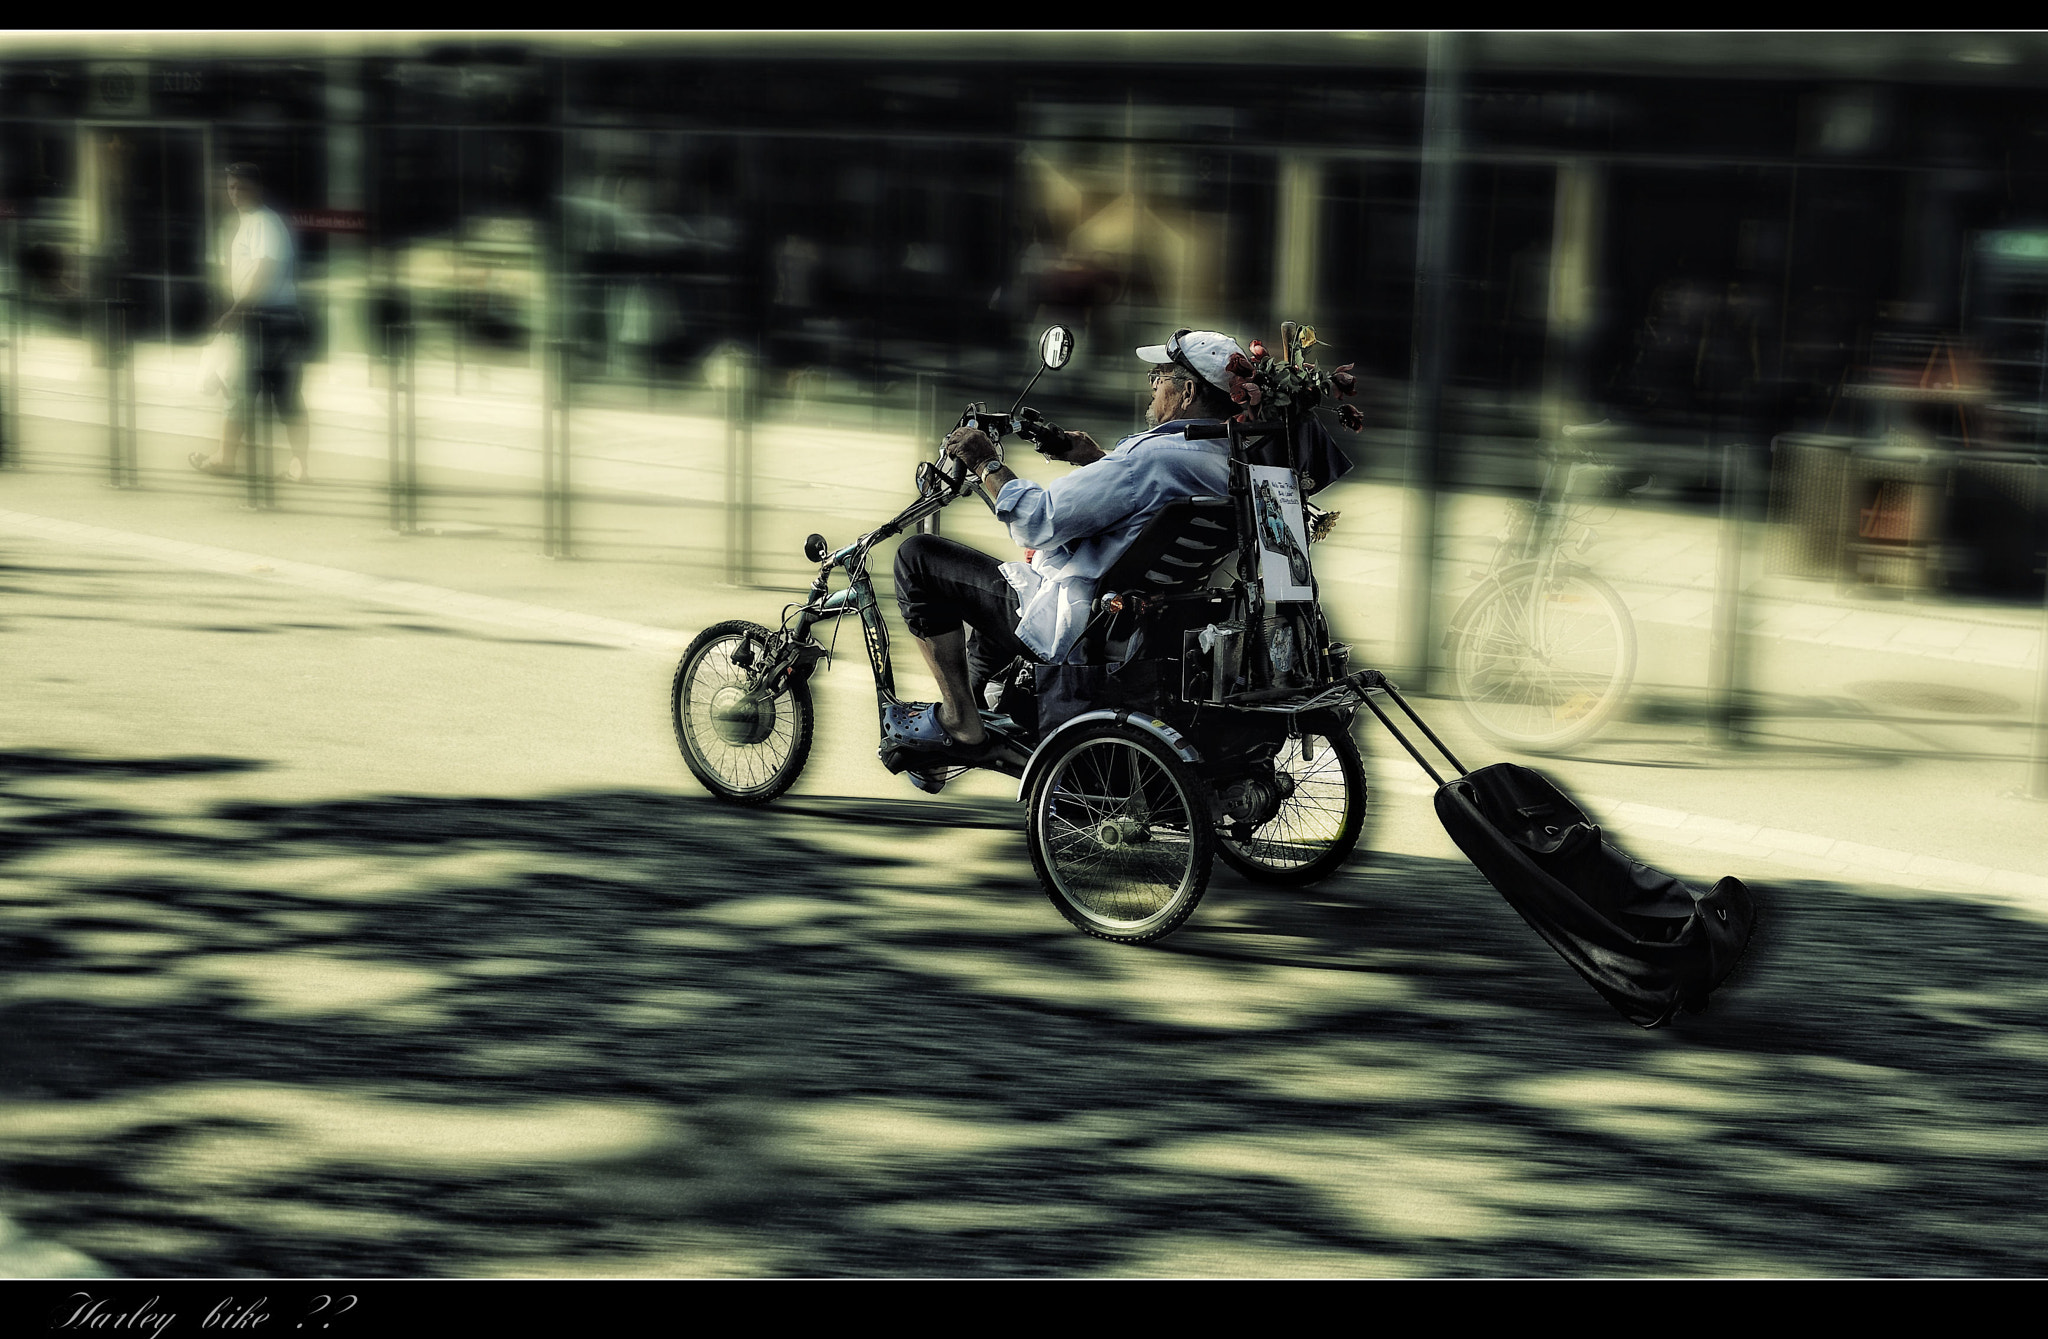 Photograph Harley bike??? by Mayte Weber on 500px